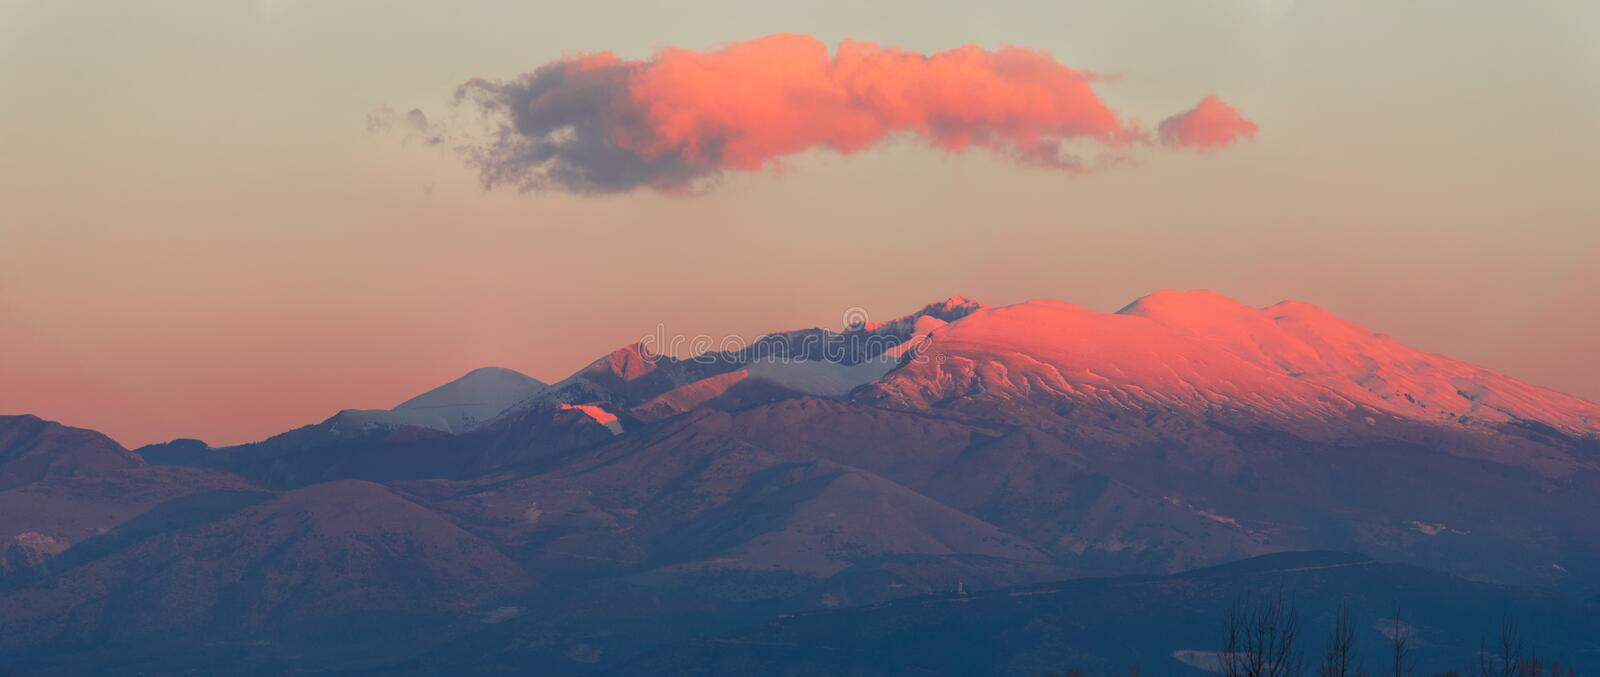 Snow caped mountain peek. A mountain ranges is colored by the first morning light stock photography